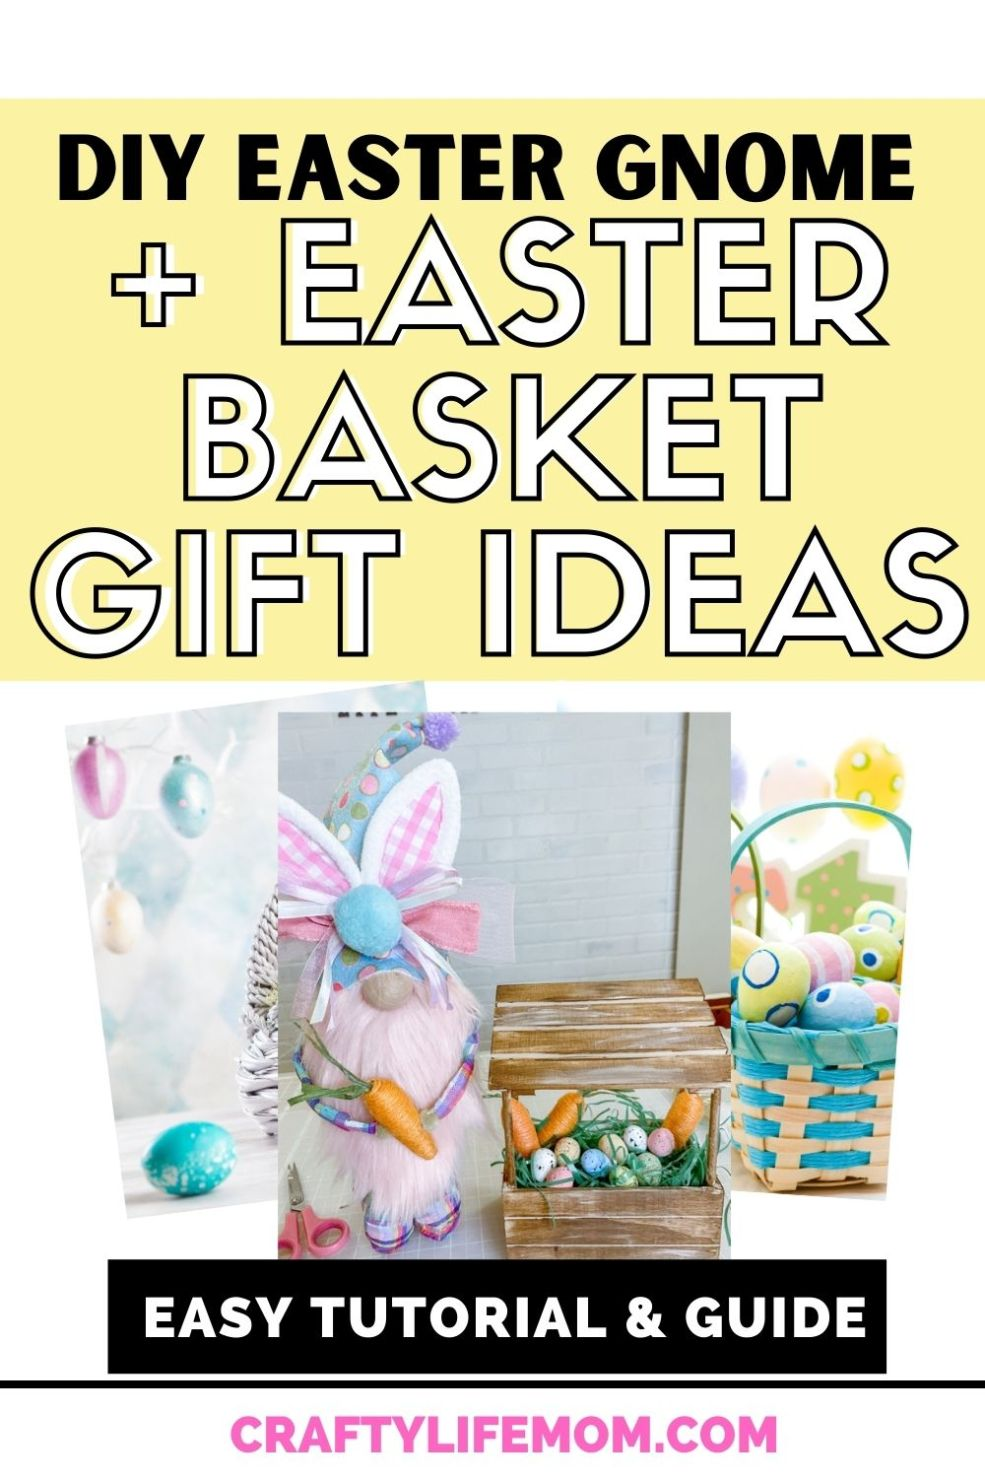 Create this cute DIY Easter Gnome Plus discover these top Easter basket gift ideas for your kids Easter baskets. This Easter gnome makes for a great gift idea in lieu of a stuffed bunny.